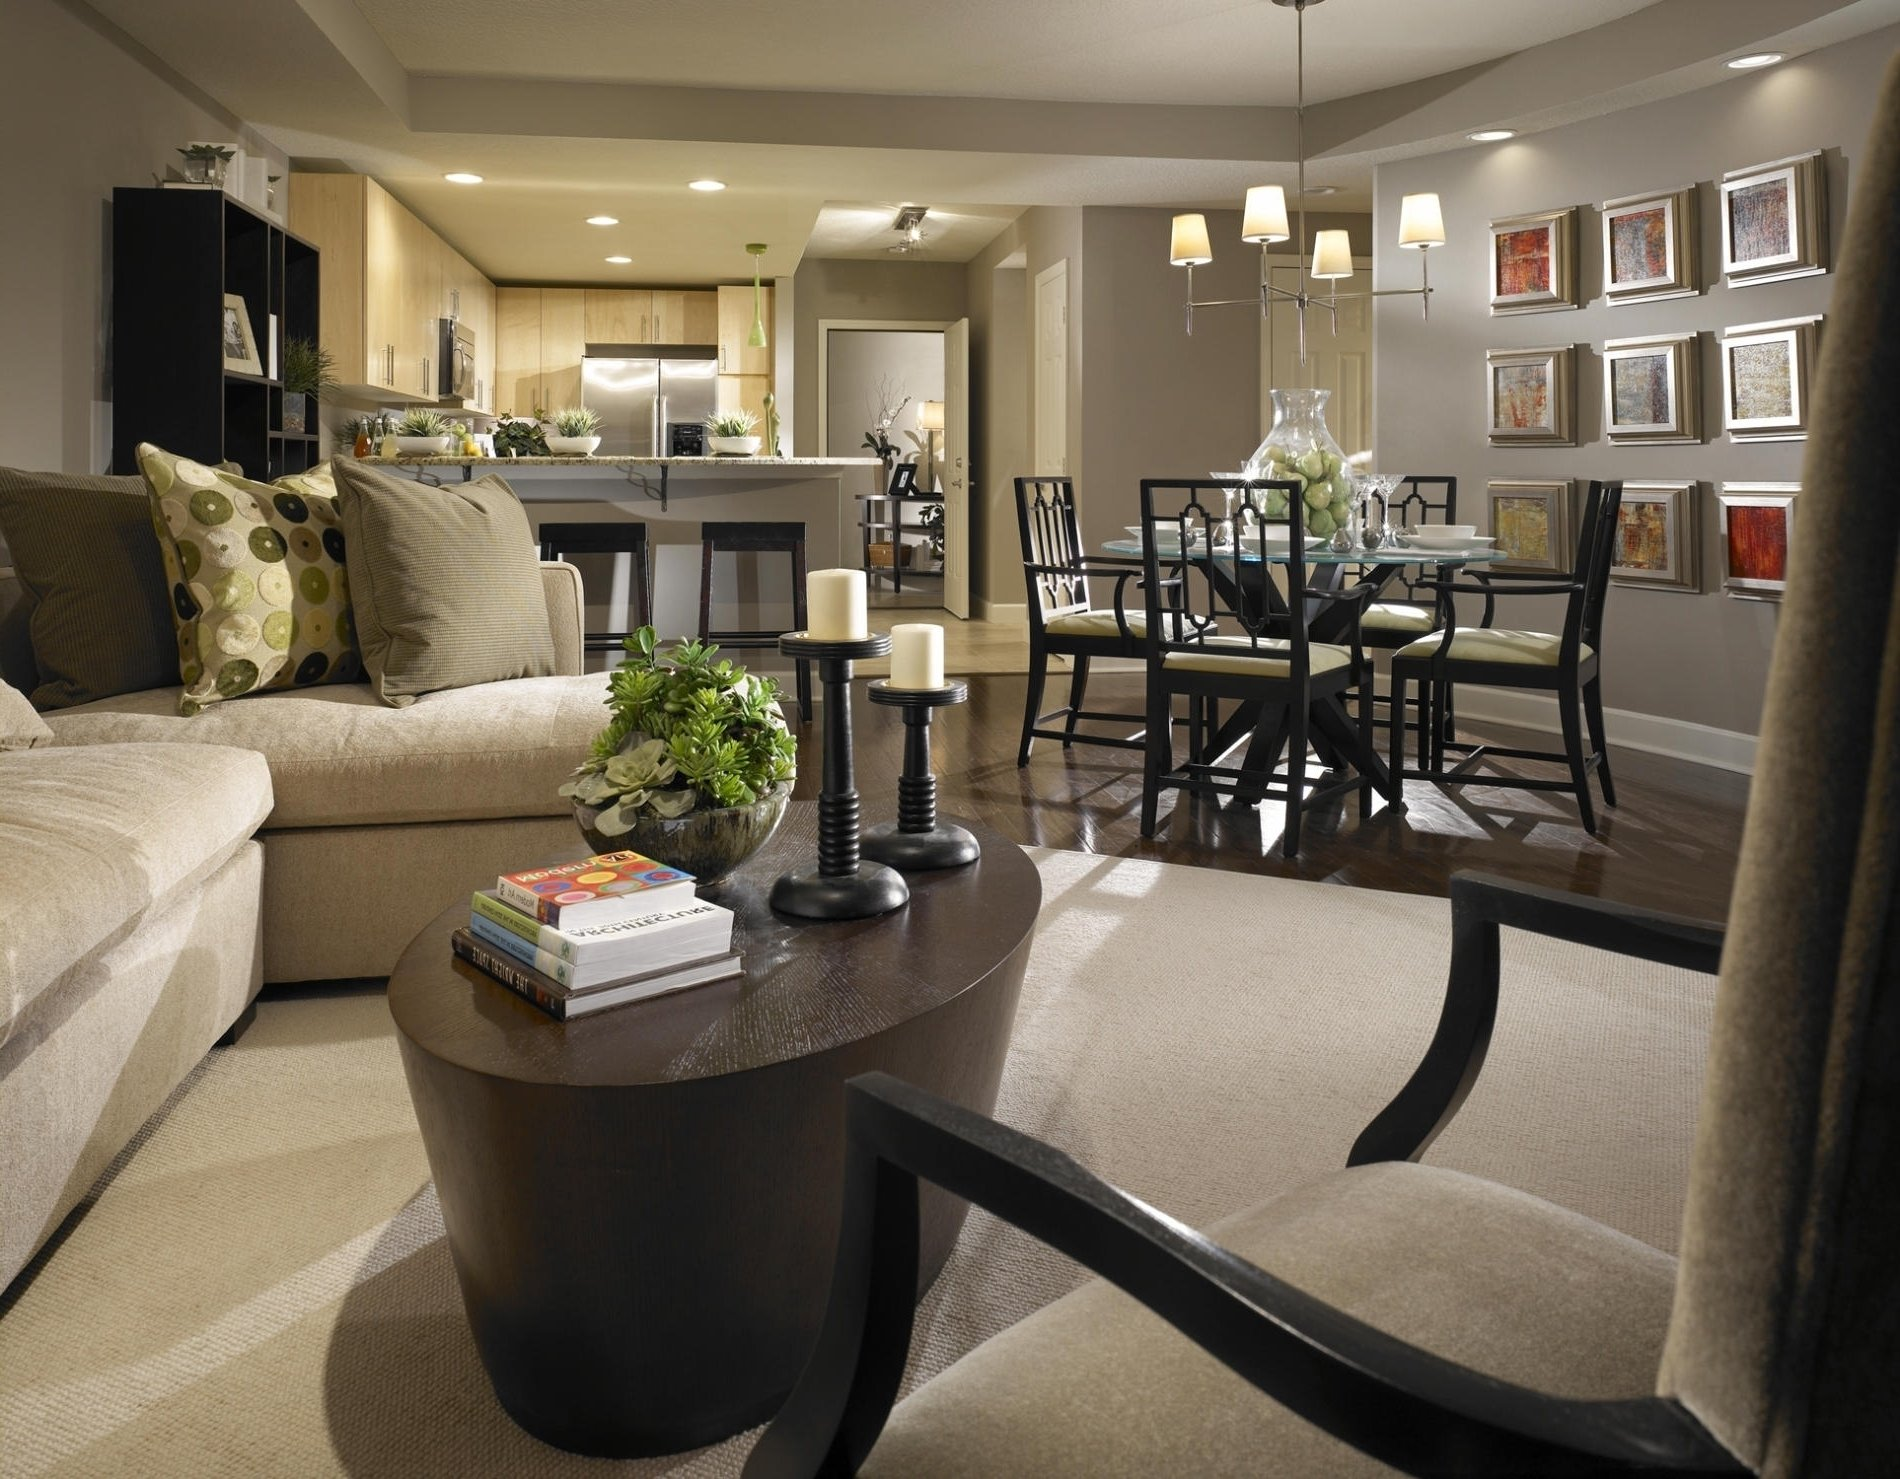 10 Amazing Dining Room Decorating Ideas On A Budget living room dining room decorating ideas for small spaces 20 living 2020